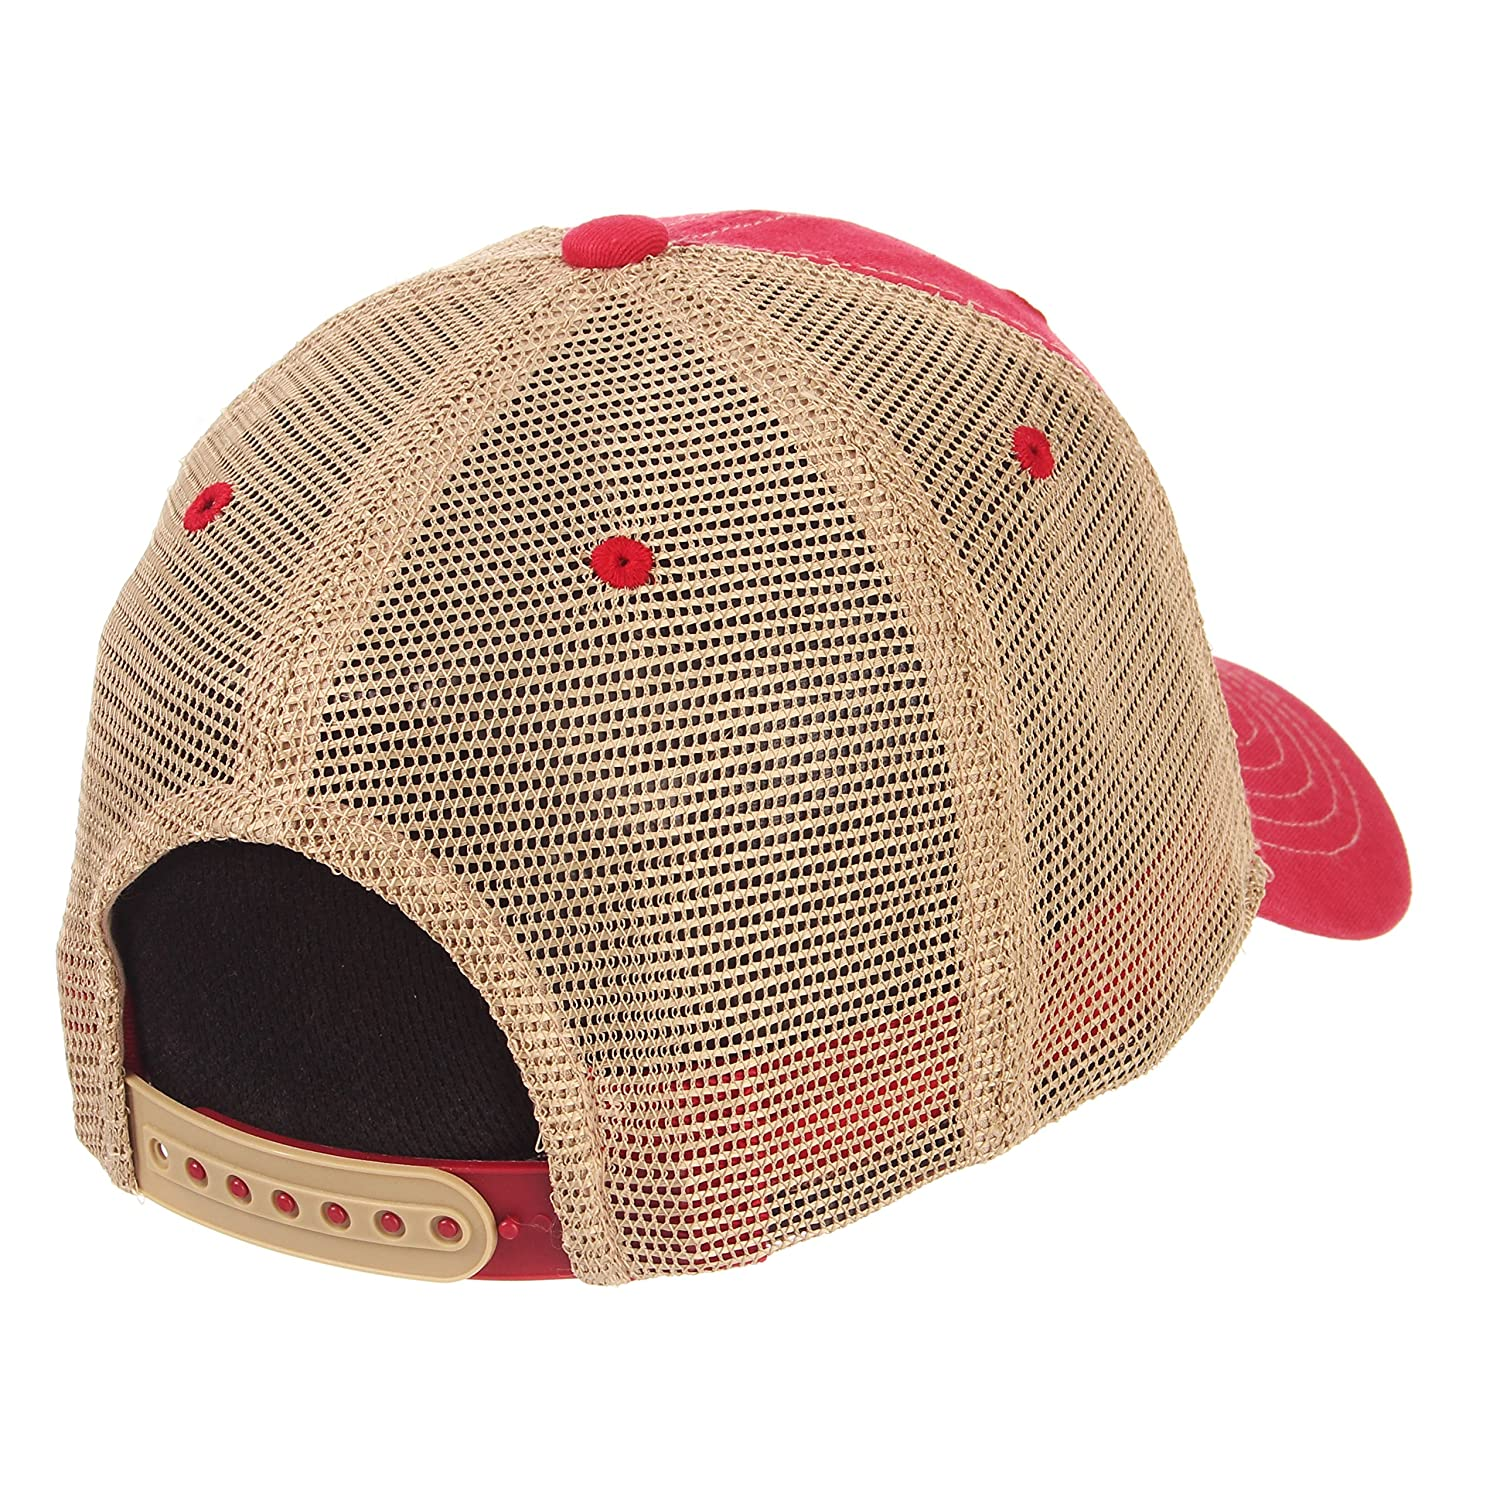 Zephyr Mens Institution Relaxed Cap Red Adjustable